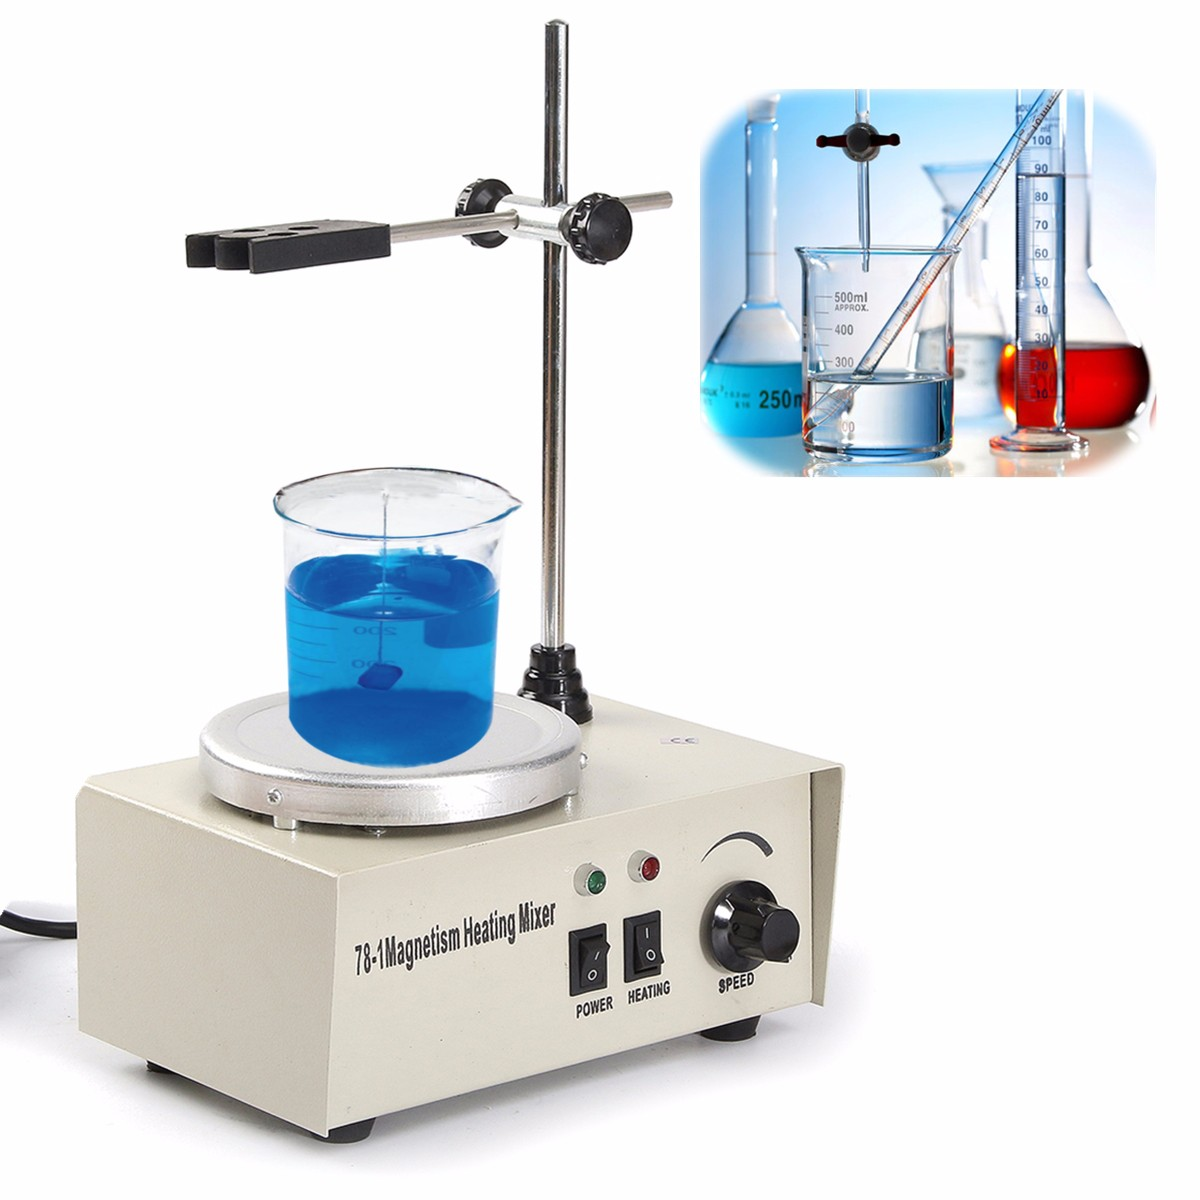 KiCute New Laboratory Chemistry Magnetic Stirrer Magnetic Stirrer Home Laboratory Magnetic Mixer Stirrers Apparatus  220V 50HZ 2017 fear of god forth collection 1 1 fog justin bieber side zipper casual pants men hiphop casual jogger pants trousers